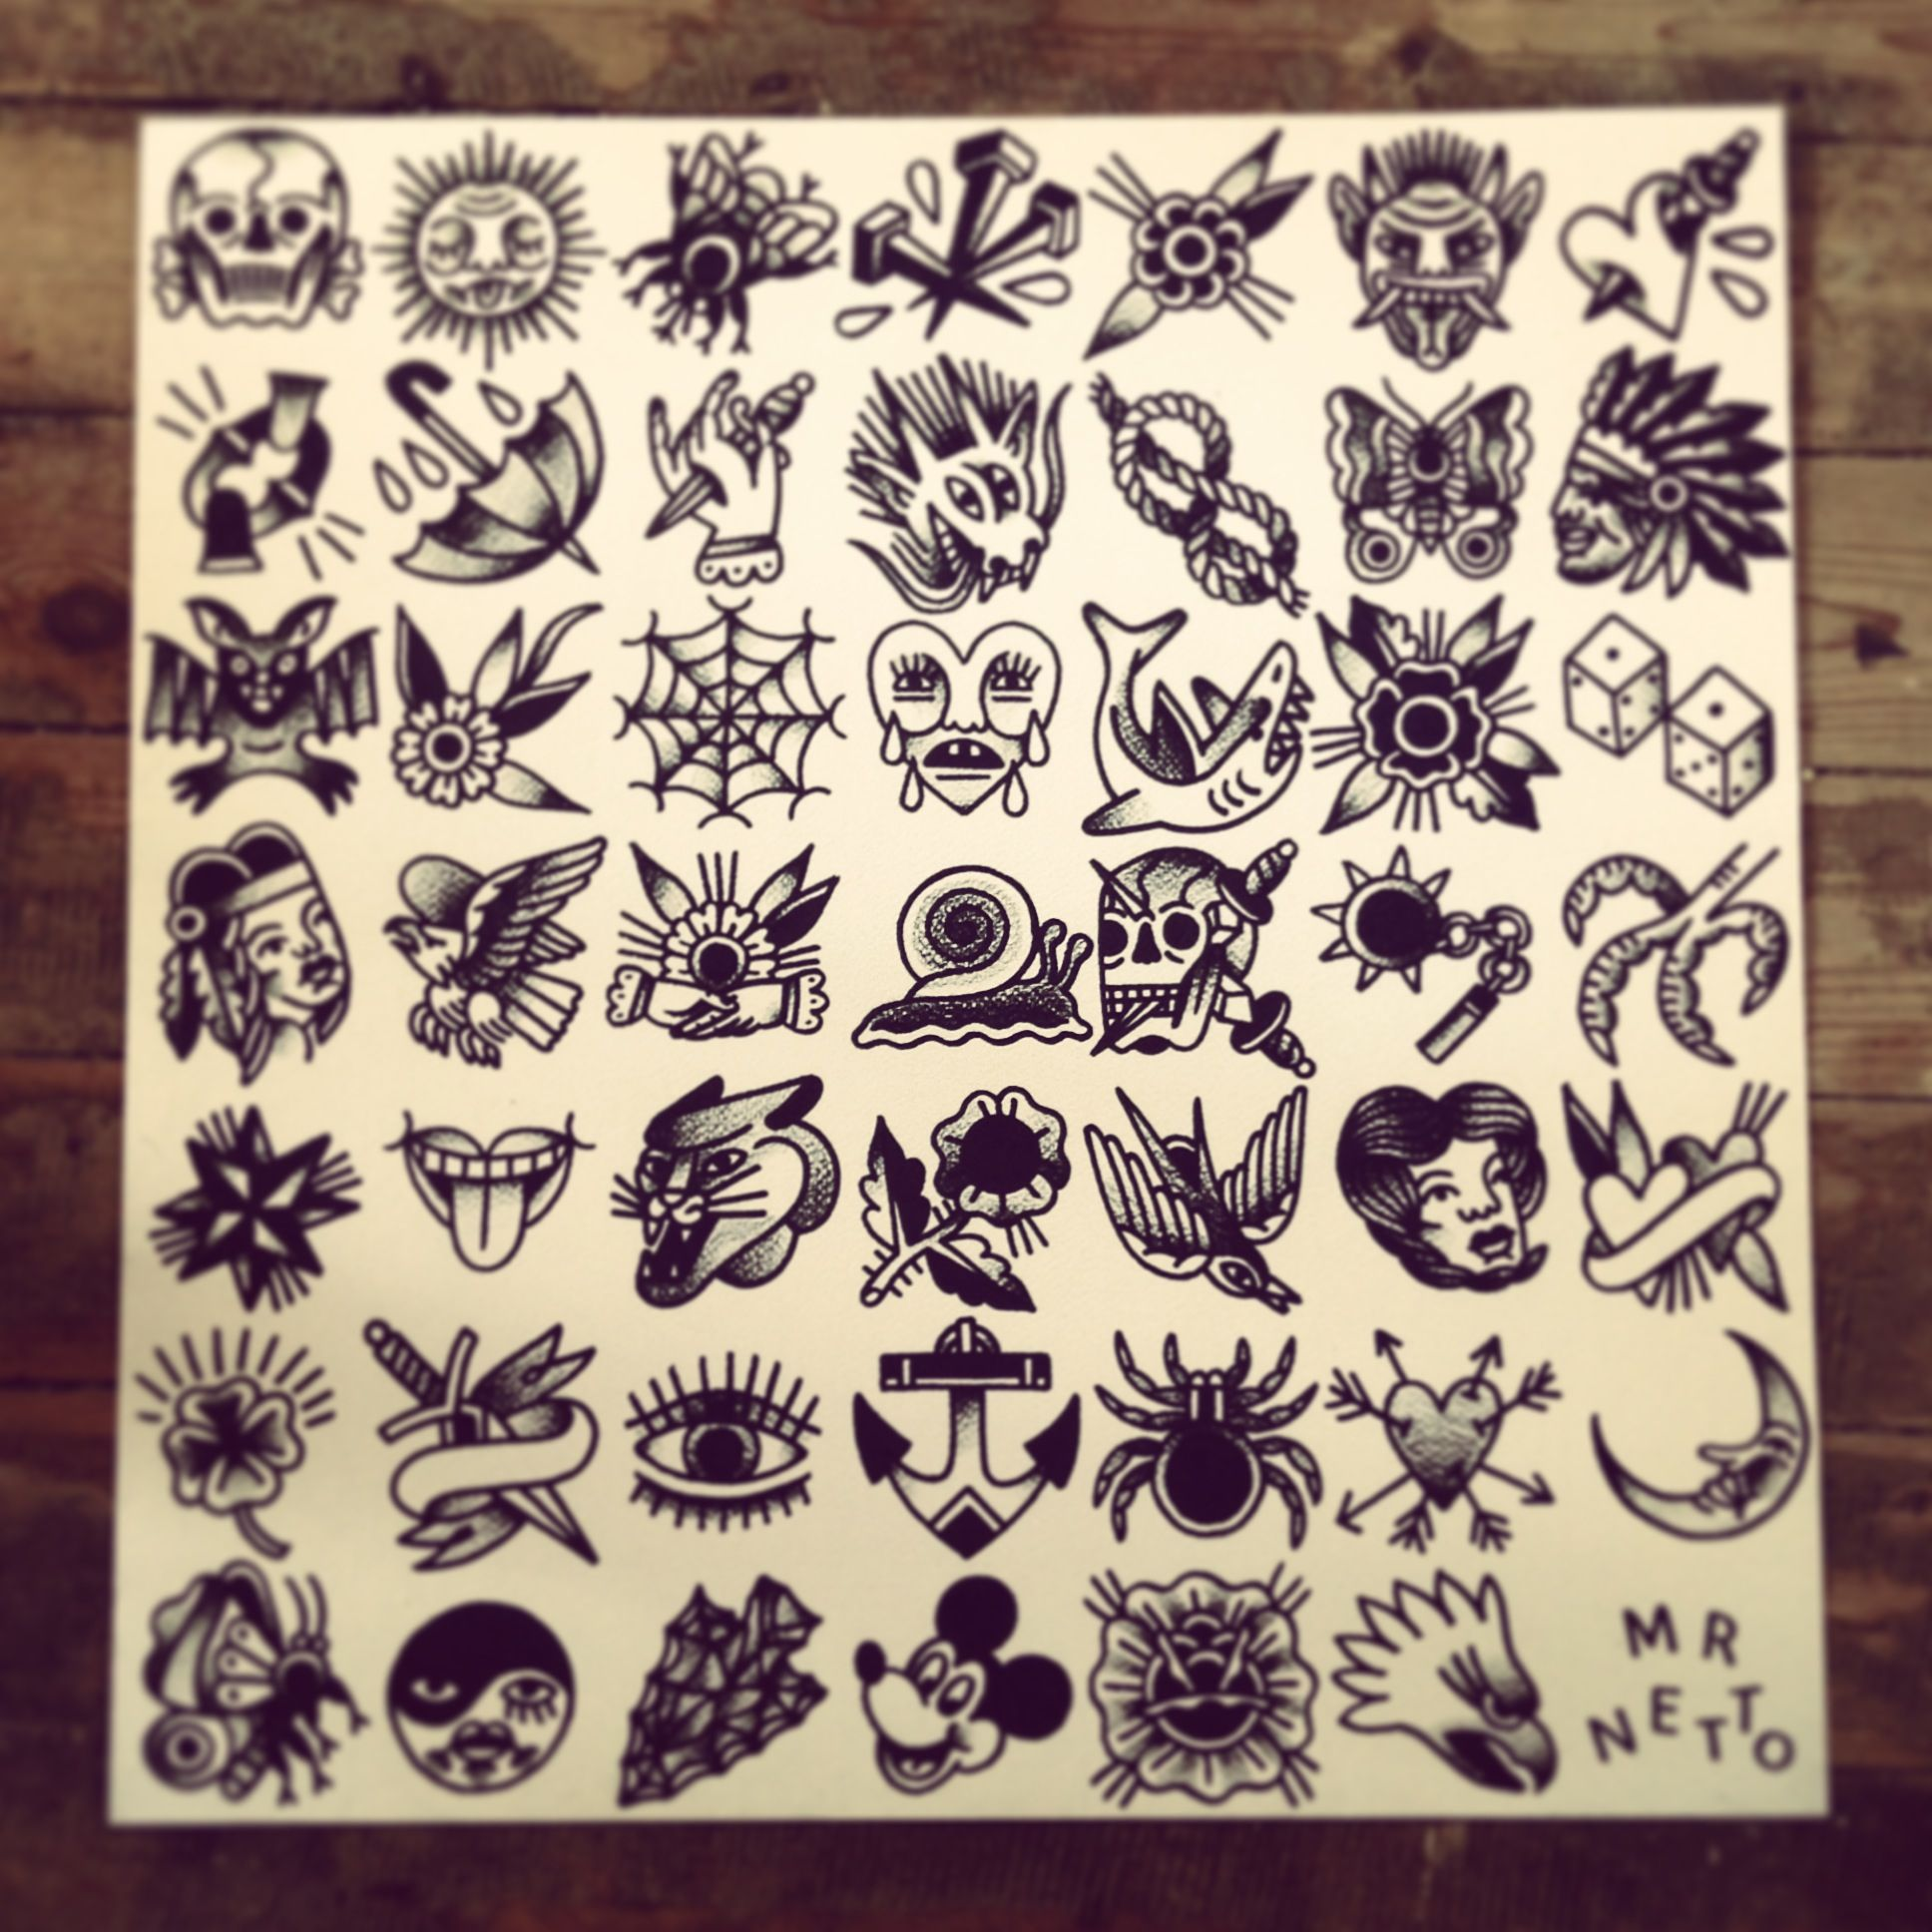 70 x 70 cm tattoo flash by mr levi netto all designs are for Small tattoo flash